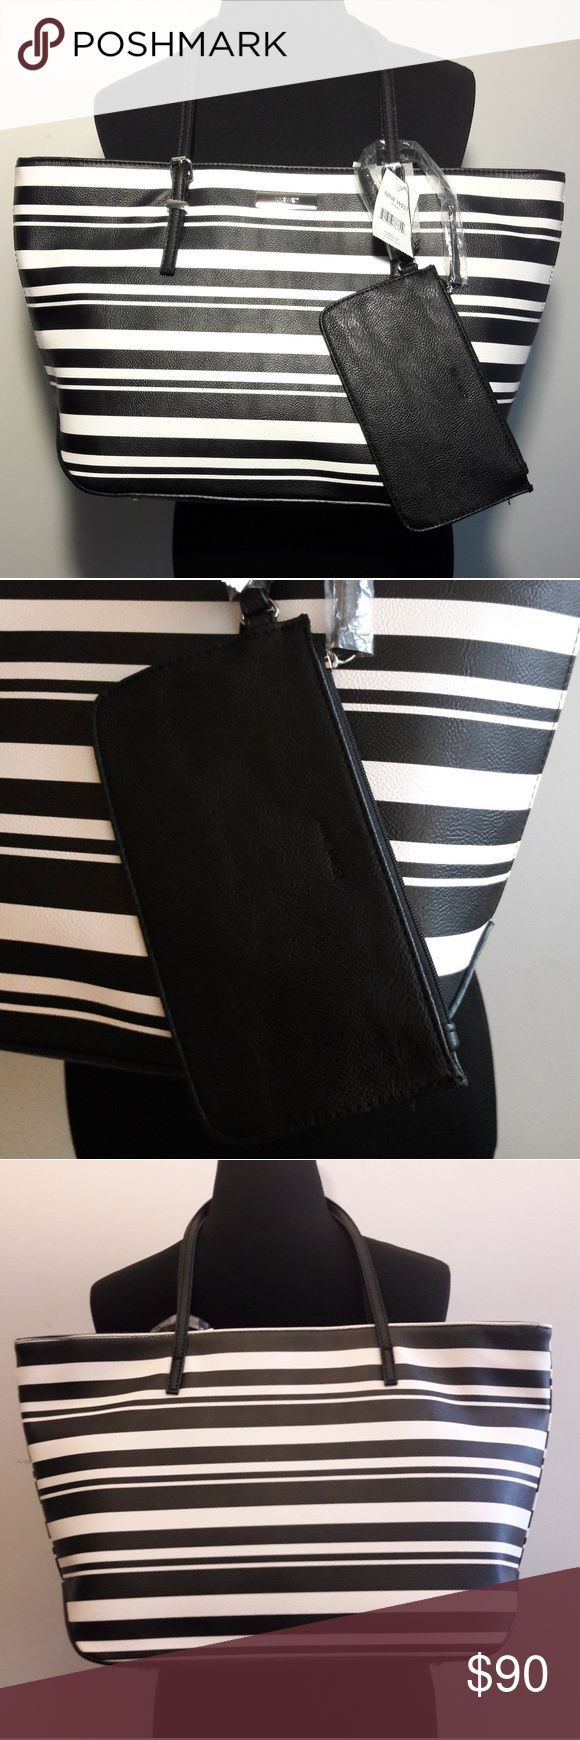 "Nine West Authentic ""IT GIRL"" Tote Purse Brand new with tag Authentic Nine West ""IT GIRL"" Black & White Large Handbag Tote Purse with Change purse.  Please be your to view all images before purchasing.  Thank you for Looking & Sharing Happy Poshing Nine West Bags Shoulder Bags"